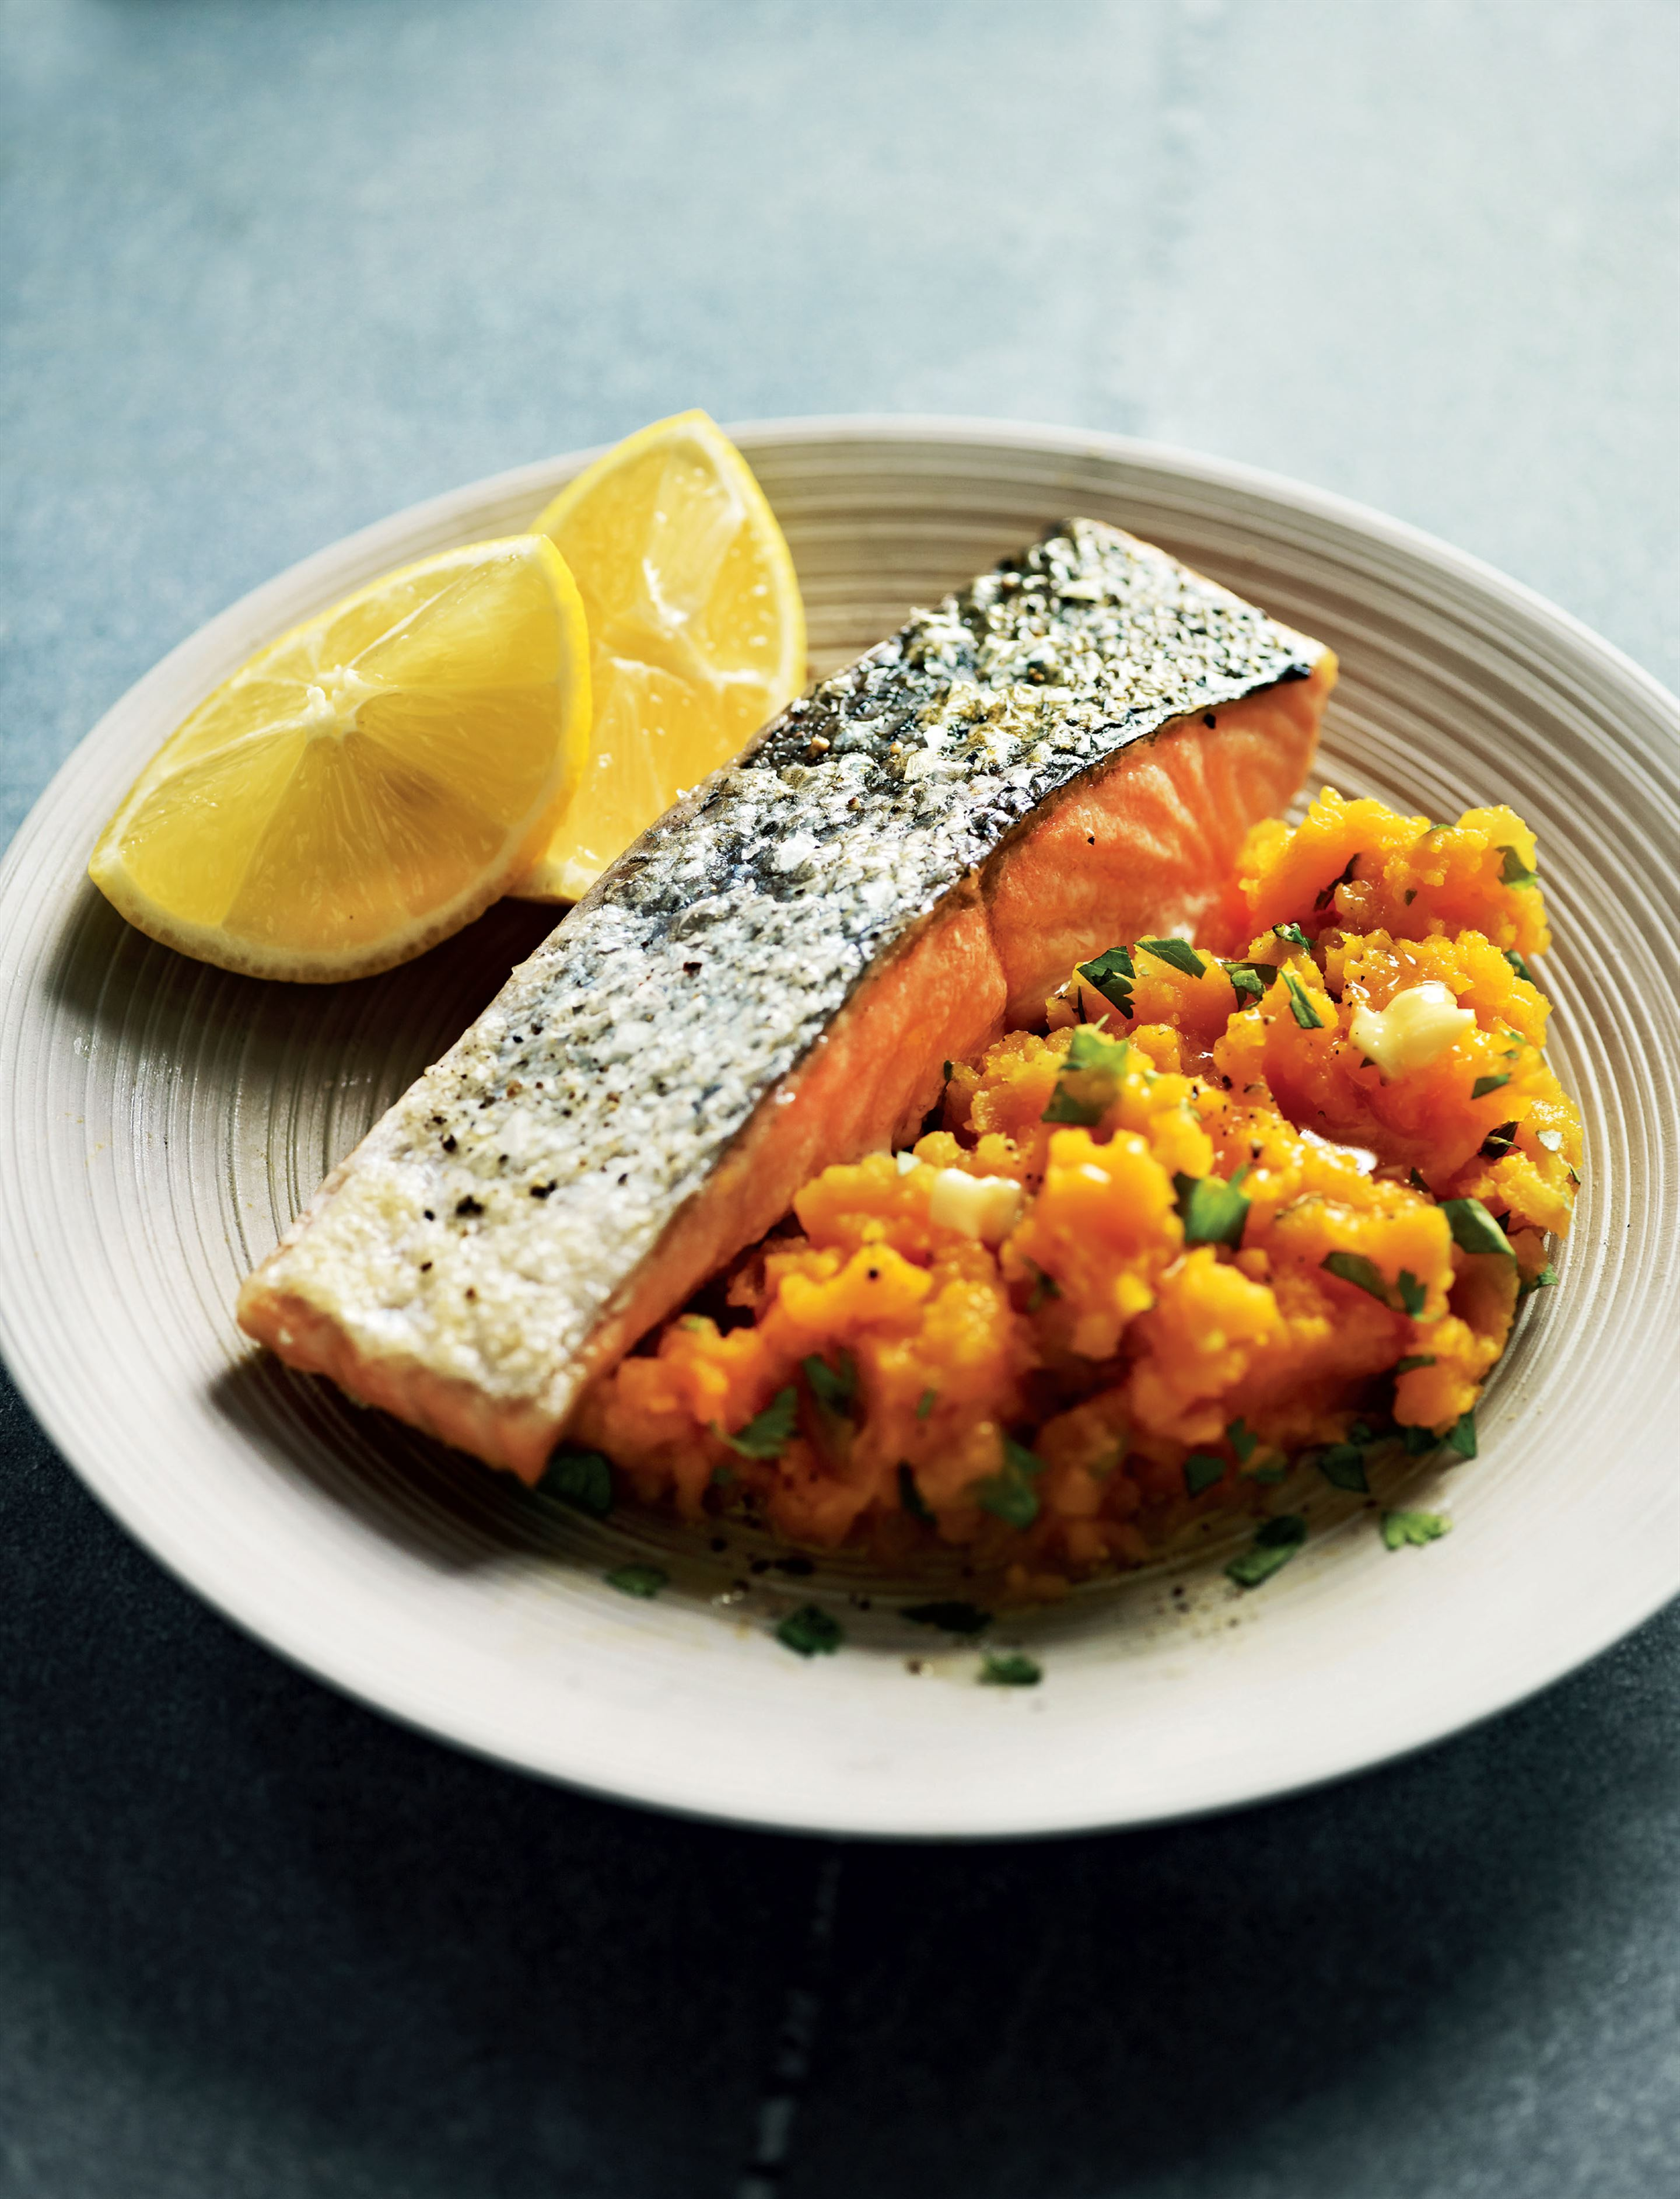 Grilled salmon with spinach and spiced carrot mash